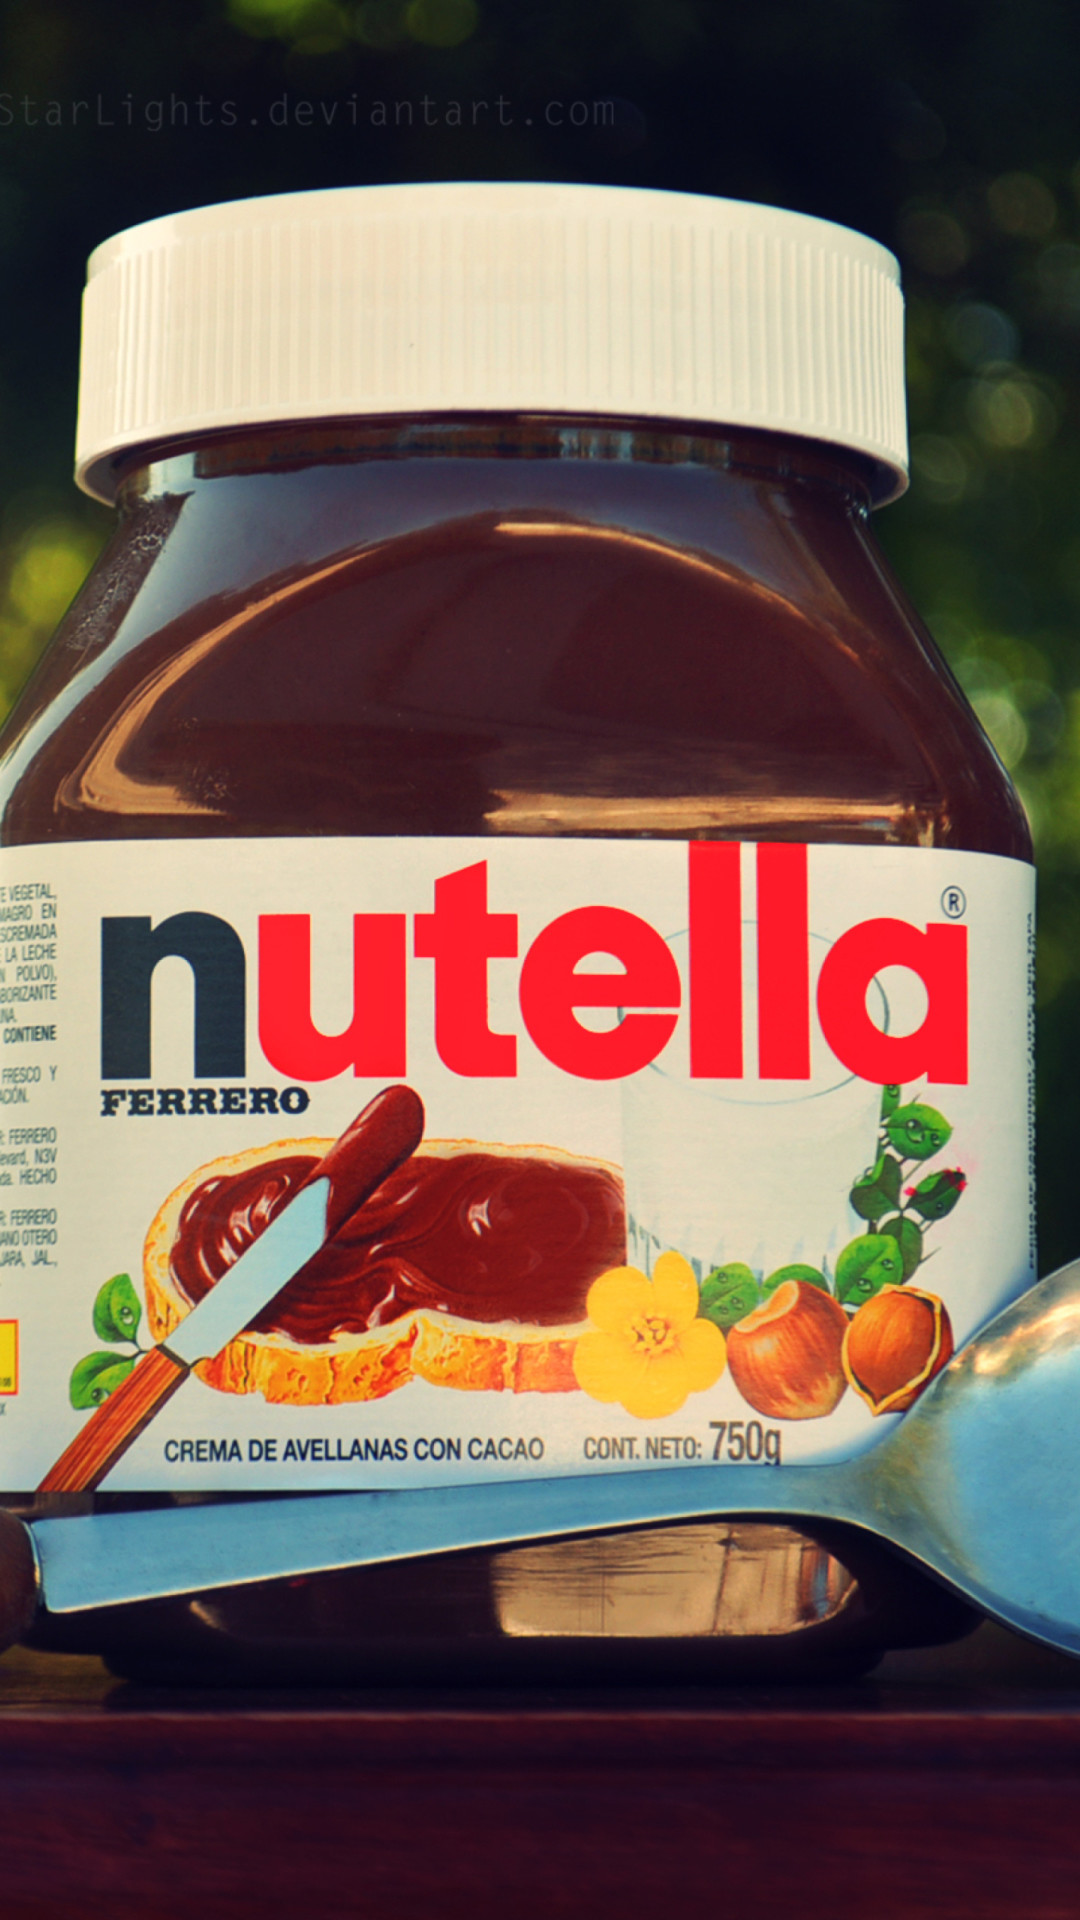 Cute Quote Wallpaper Download Nutella Wallpapers 183 ① Wallpapertag